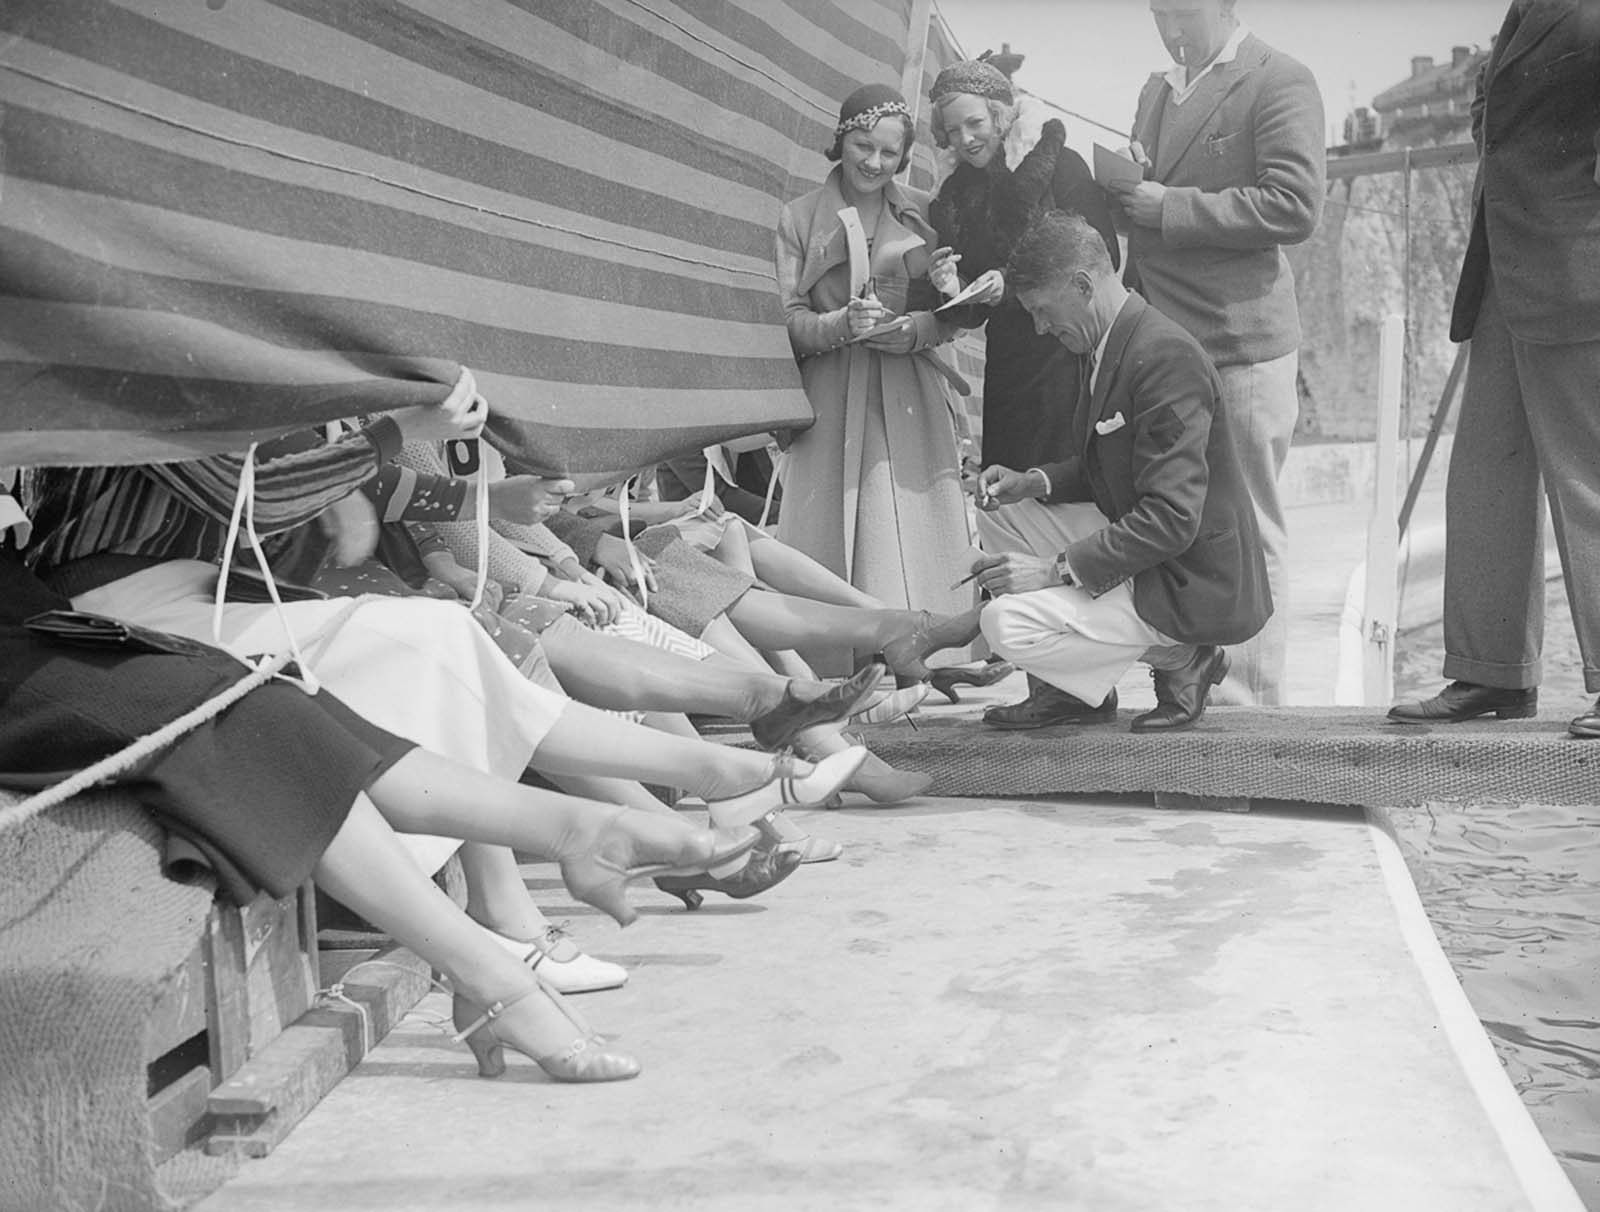 Judges and competitors at a 'prettiest ankle' contest, Cliftonville, Kent in 1933.